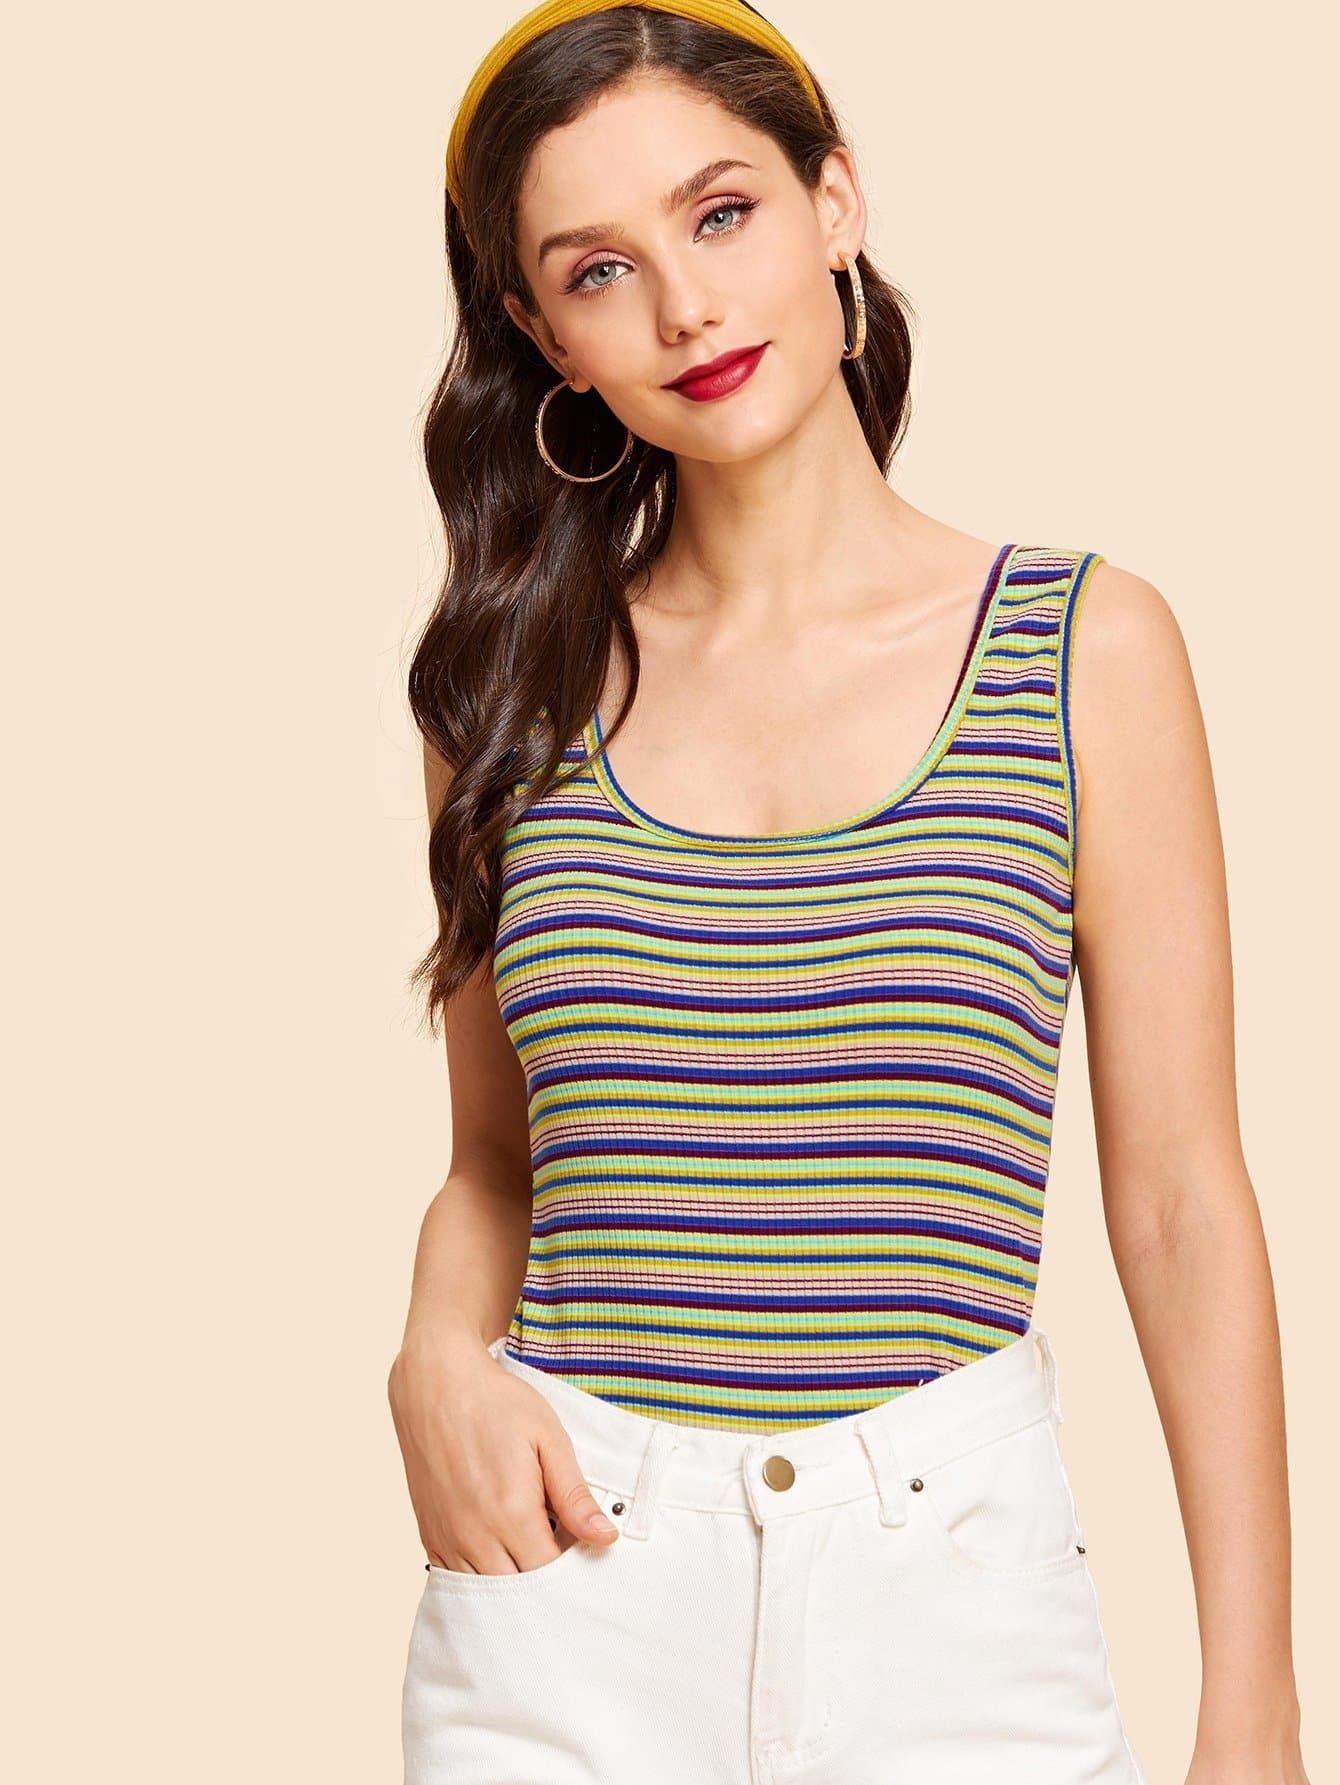 Striped Print Scoop Neck Tank Top women s simple scoop neck striped floral hem tank top